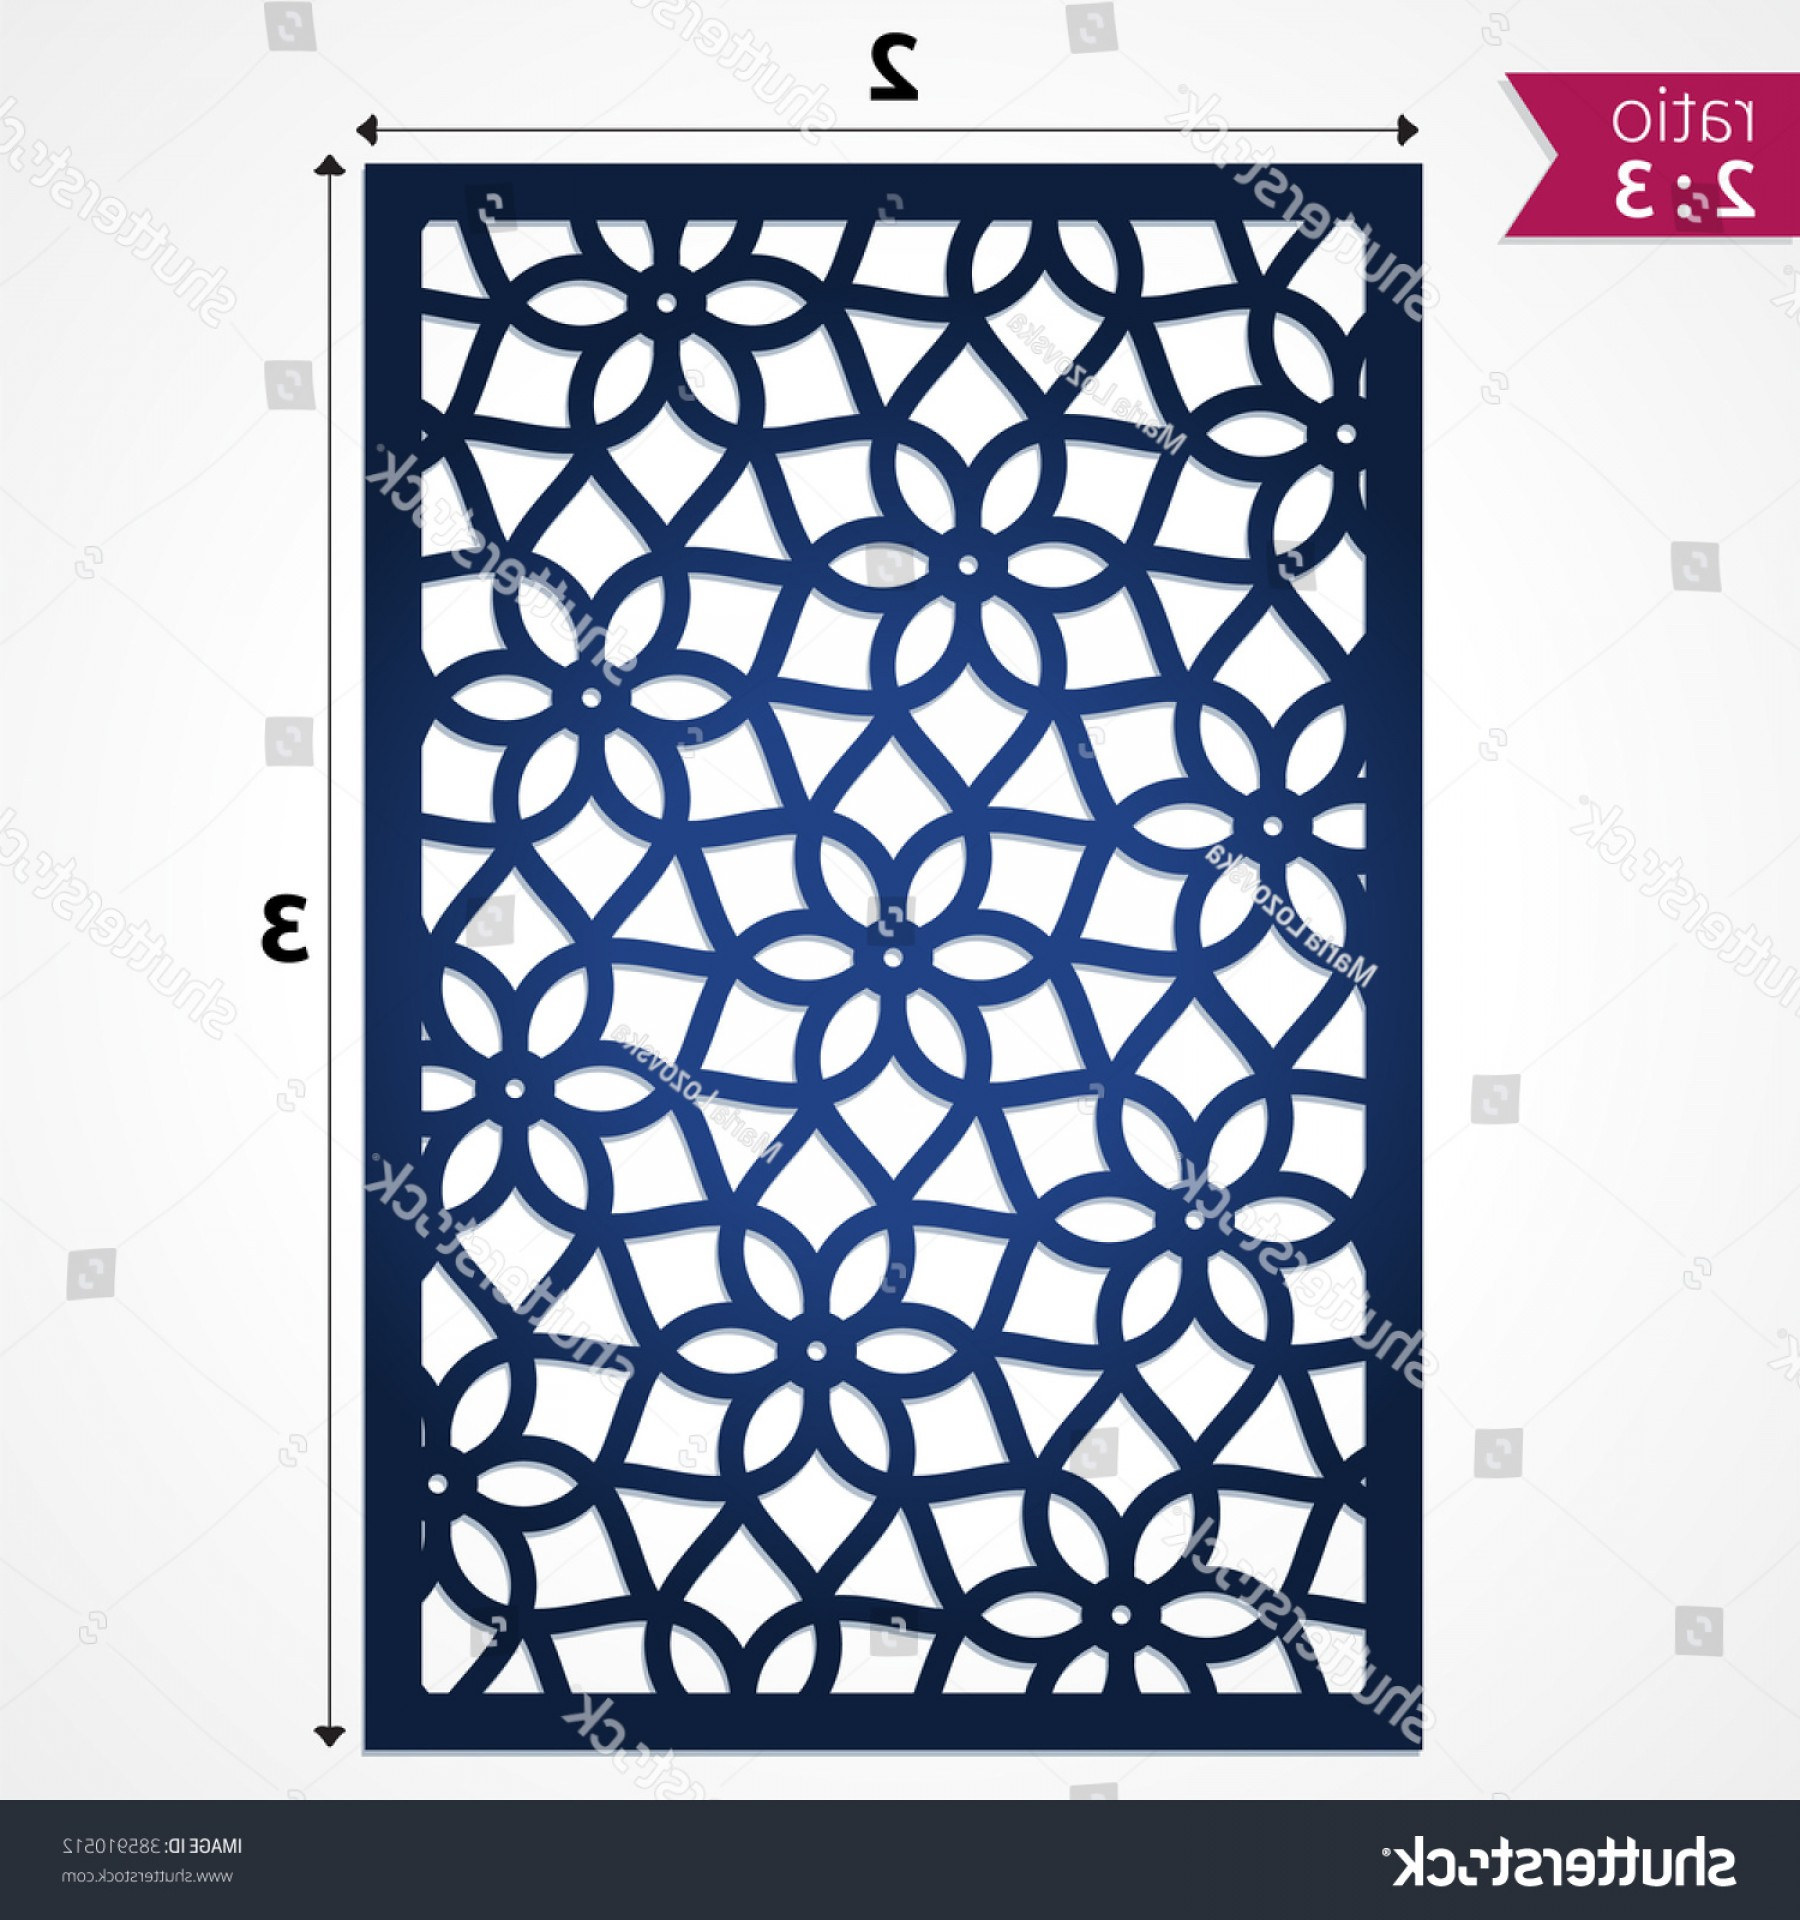 Looking For A Laser That Can Be Cut Using Files Vector: Abstract Laser Cut Pattern Background Die